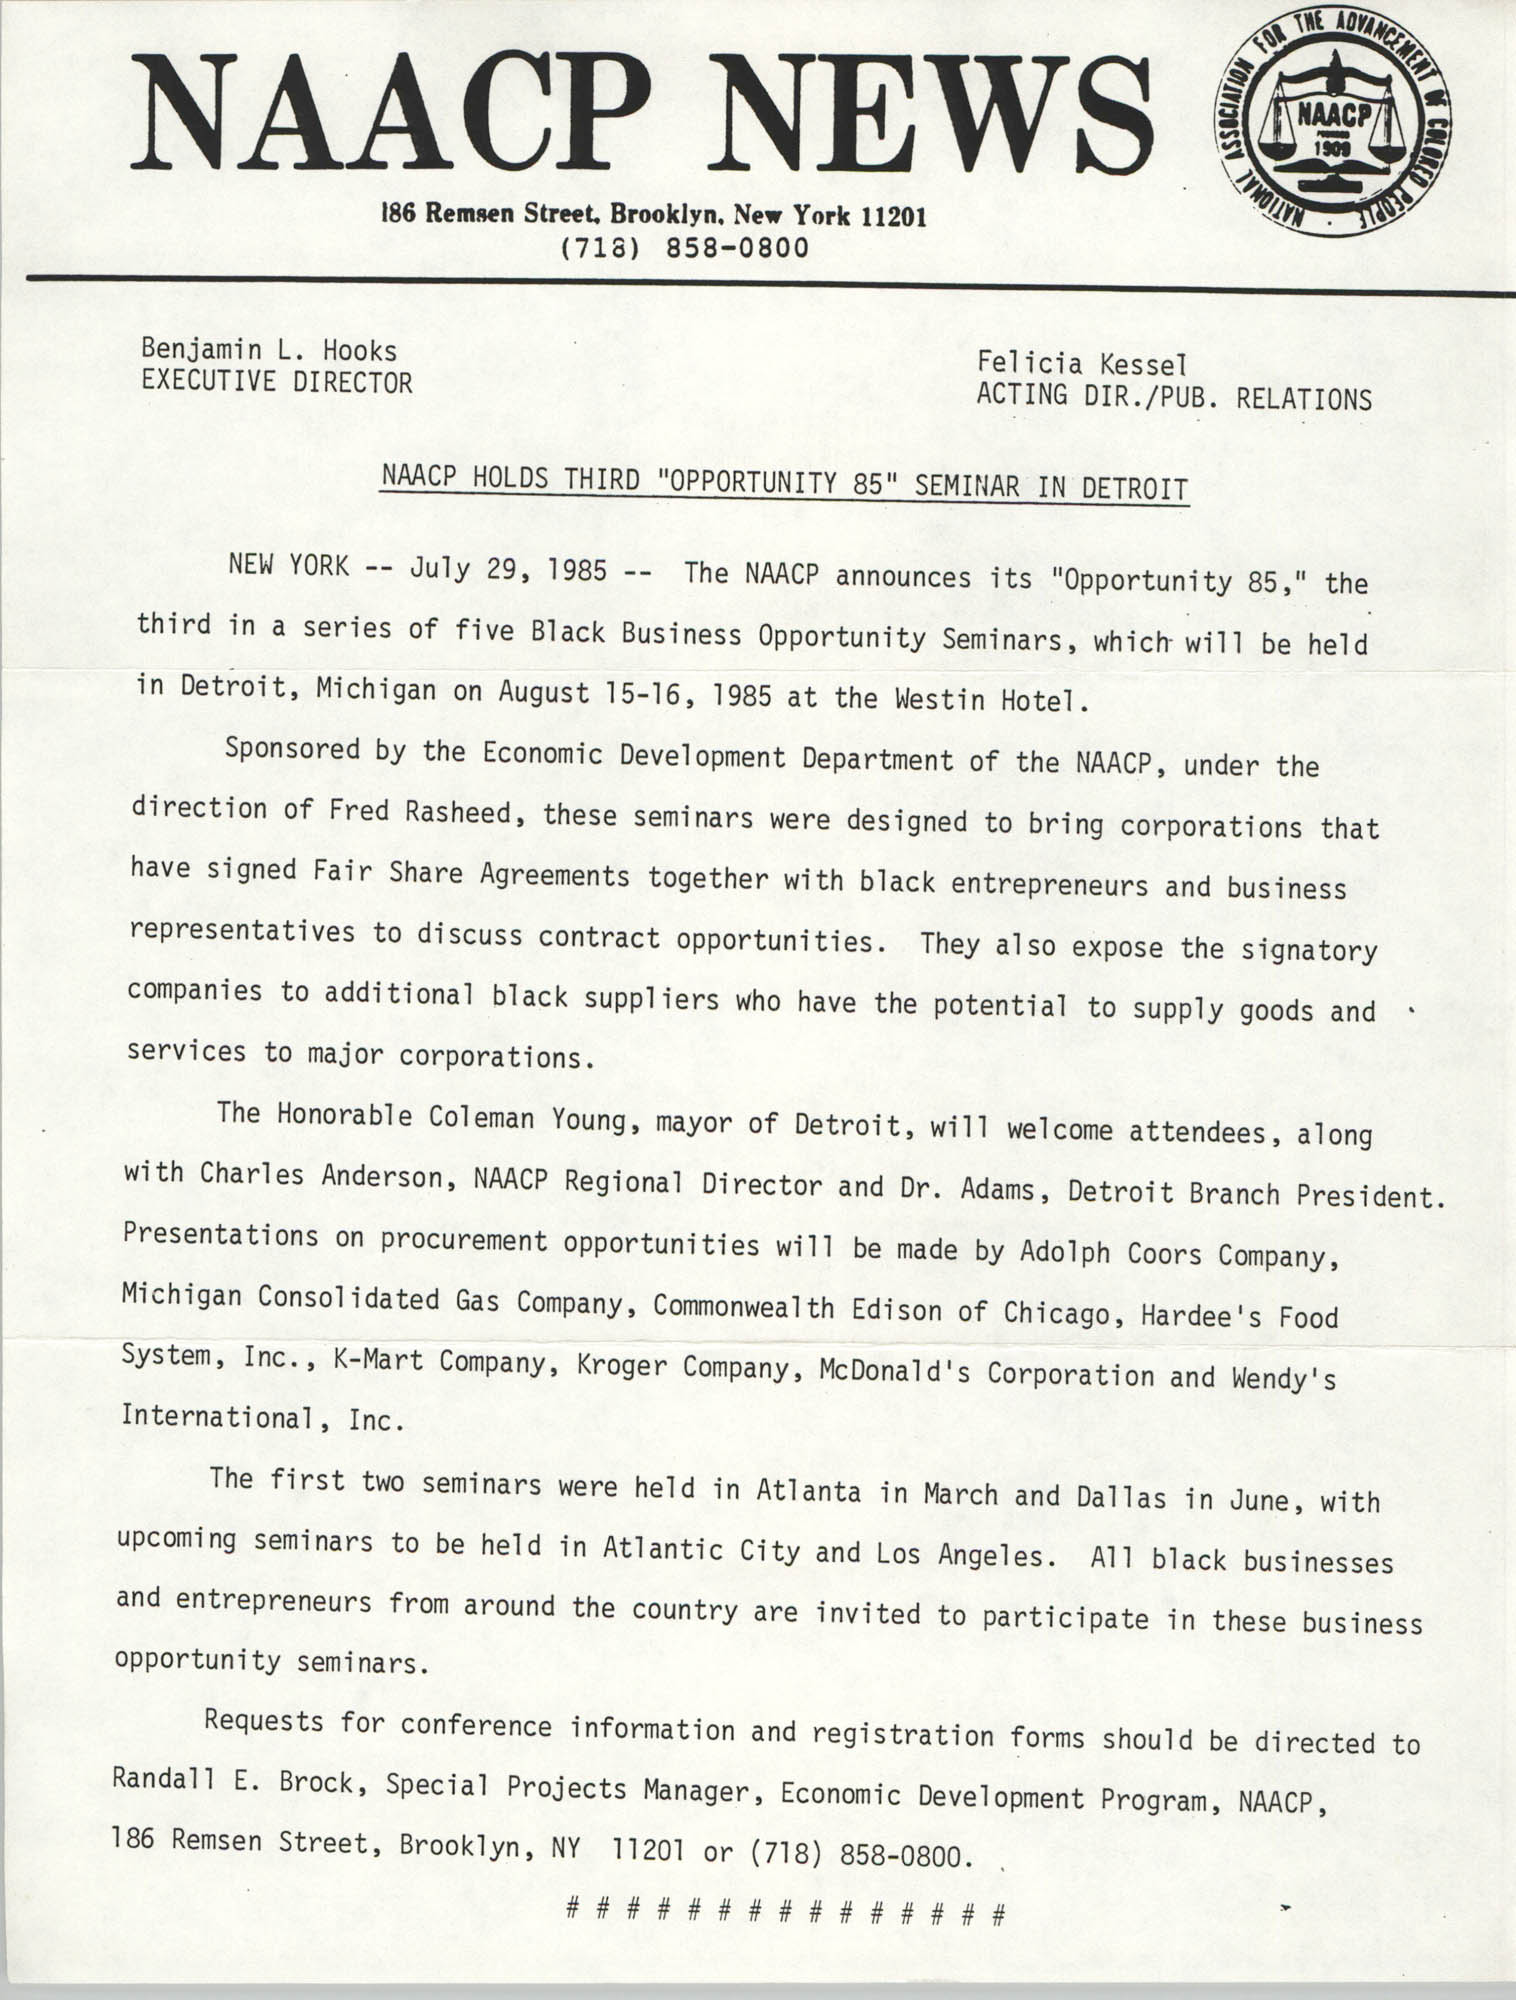 NAACP News Statement, June 29, 1985